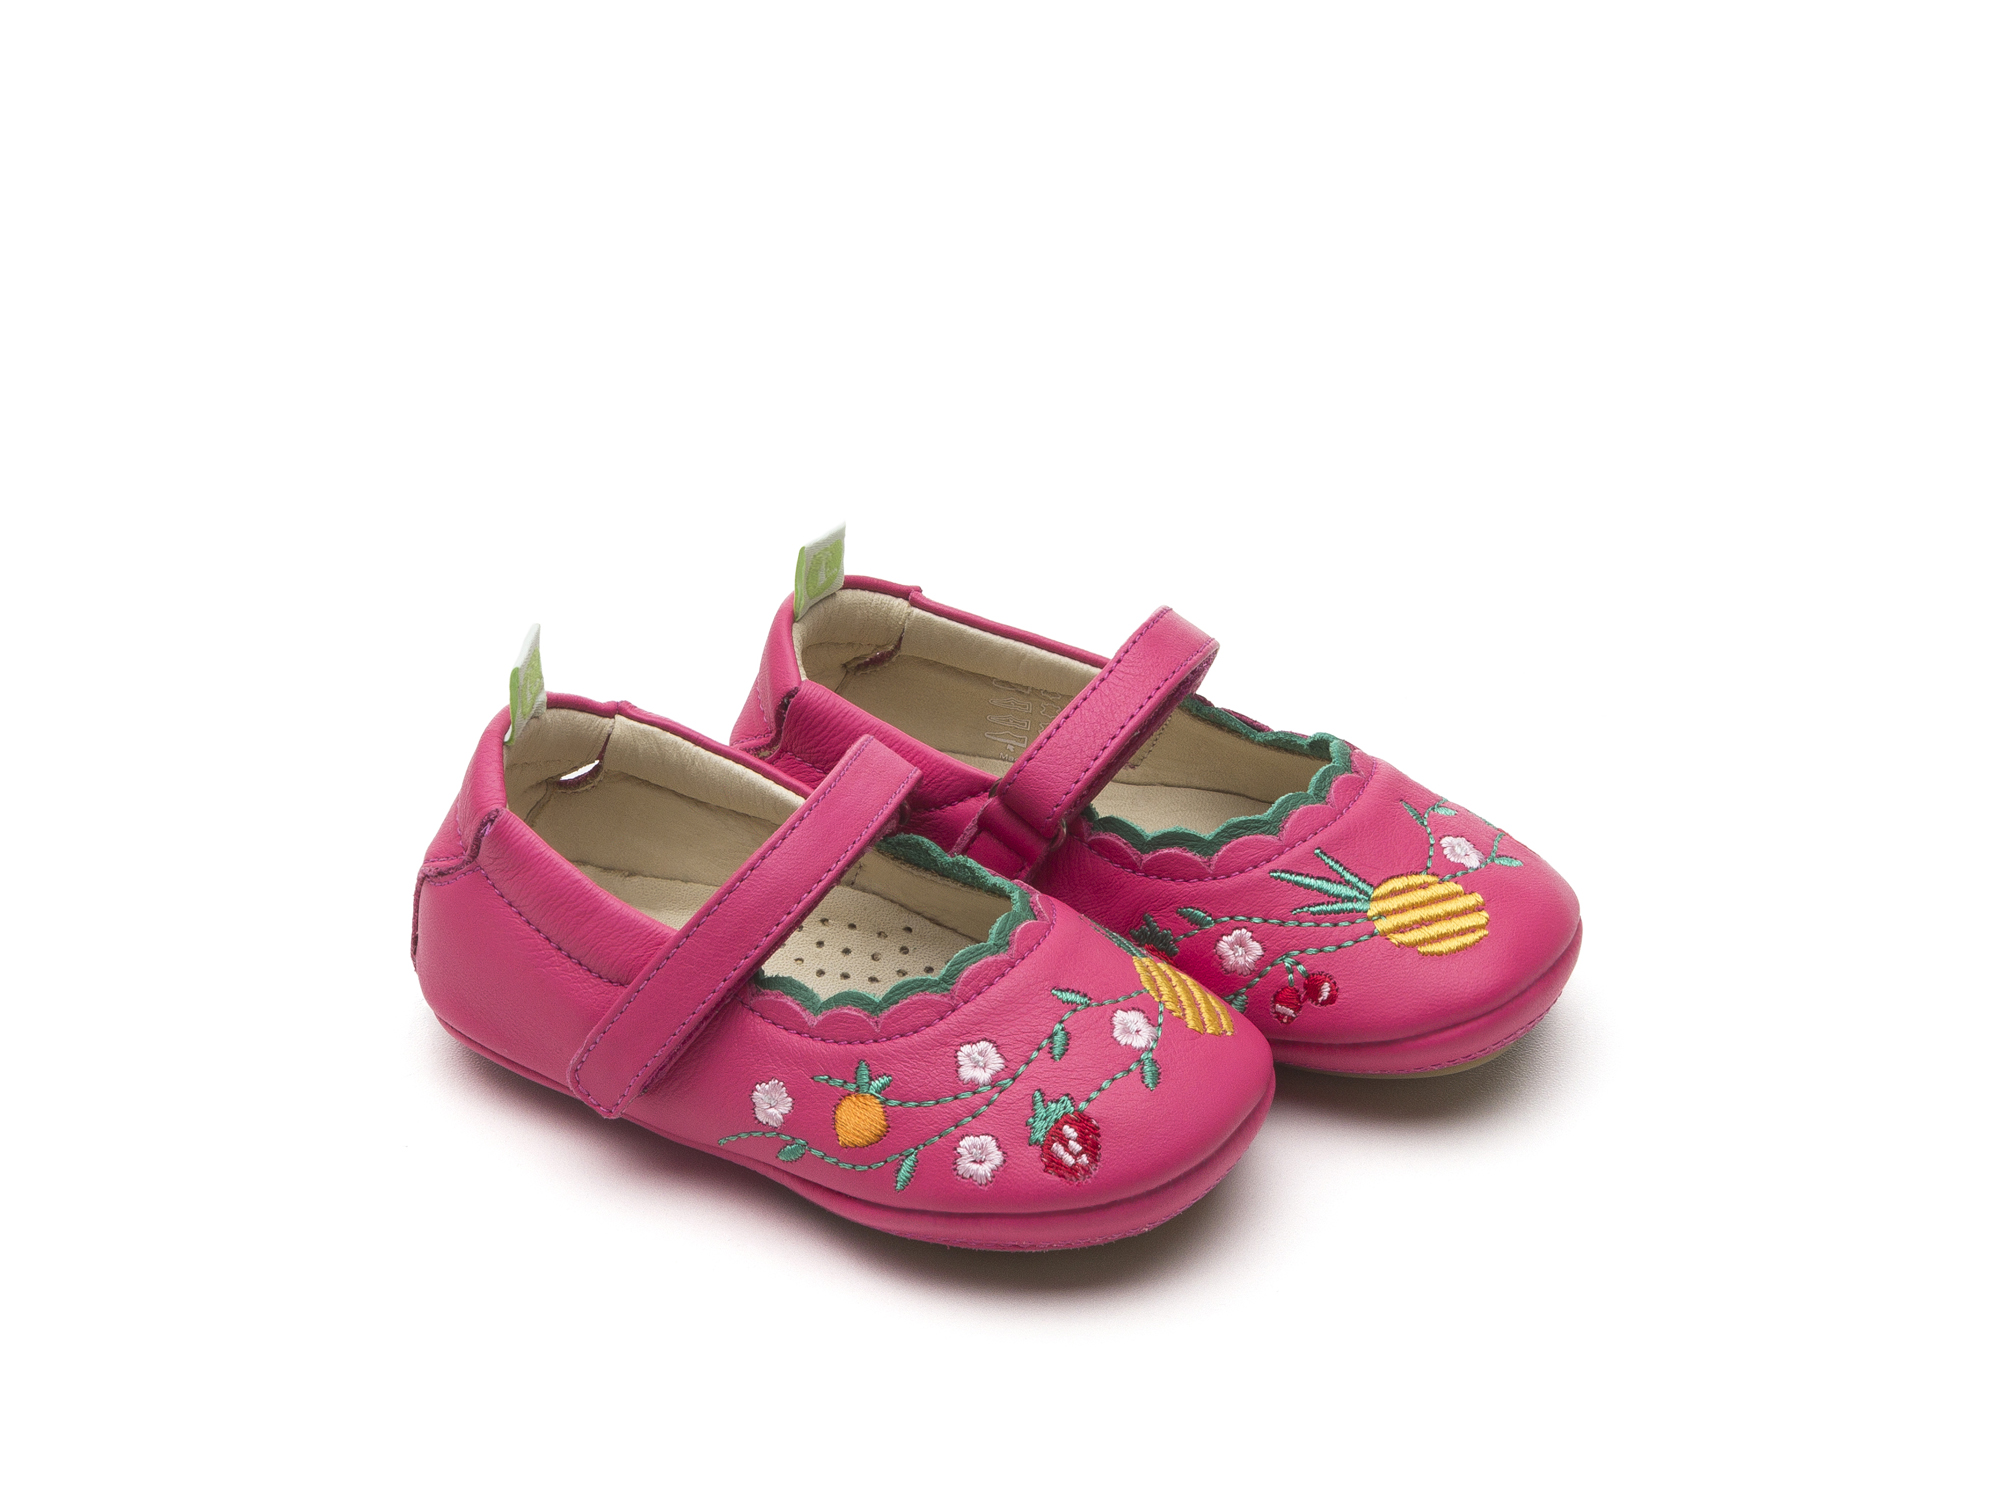 Baby Shoes Mary Janes Shoes Roundy garden Pink Size 14